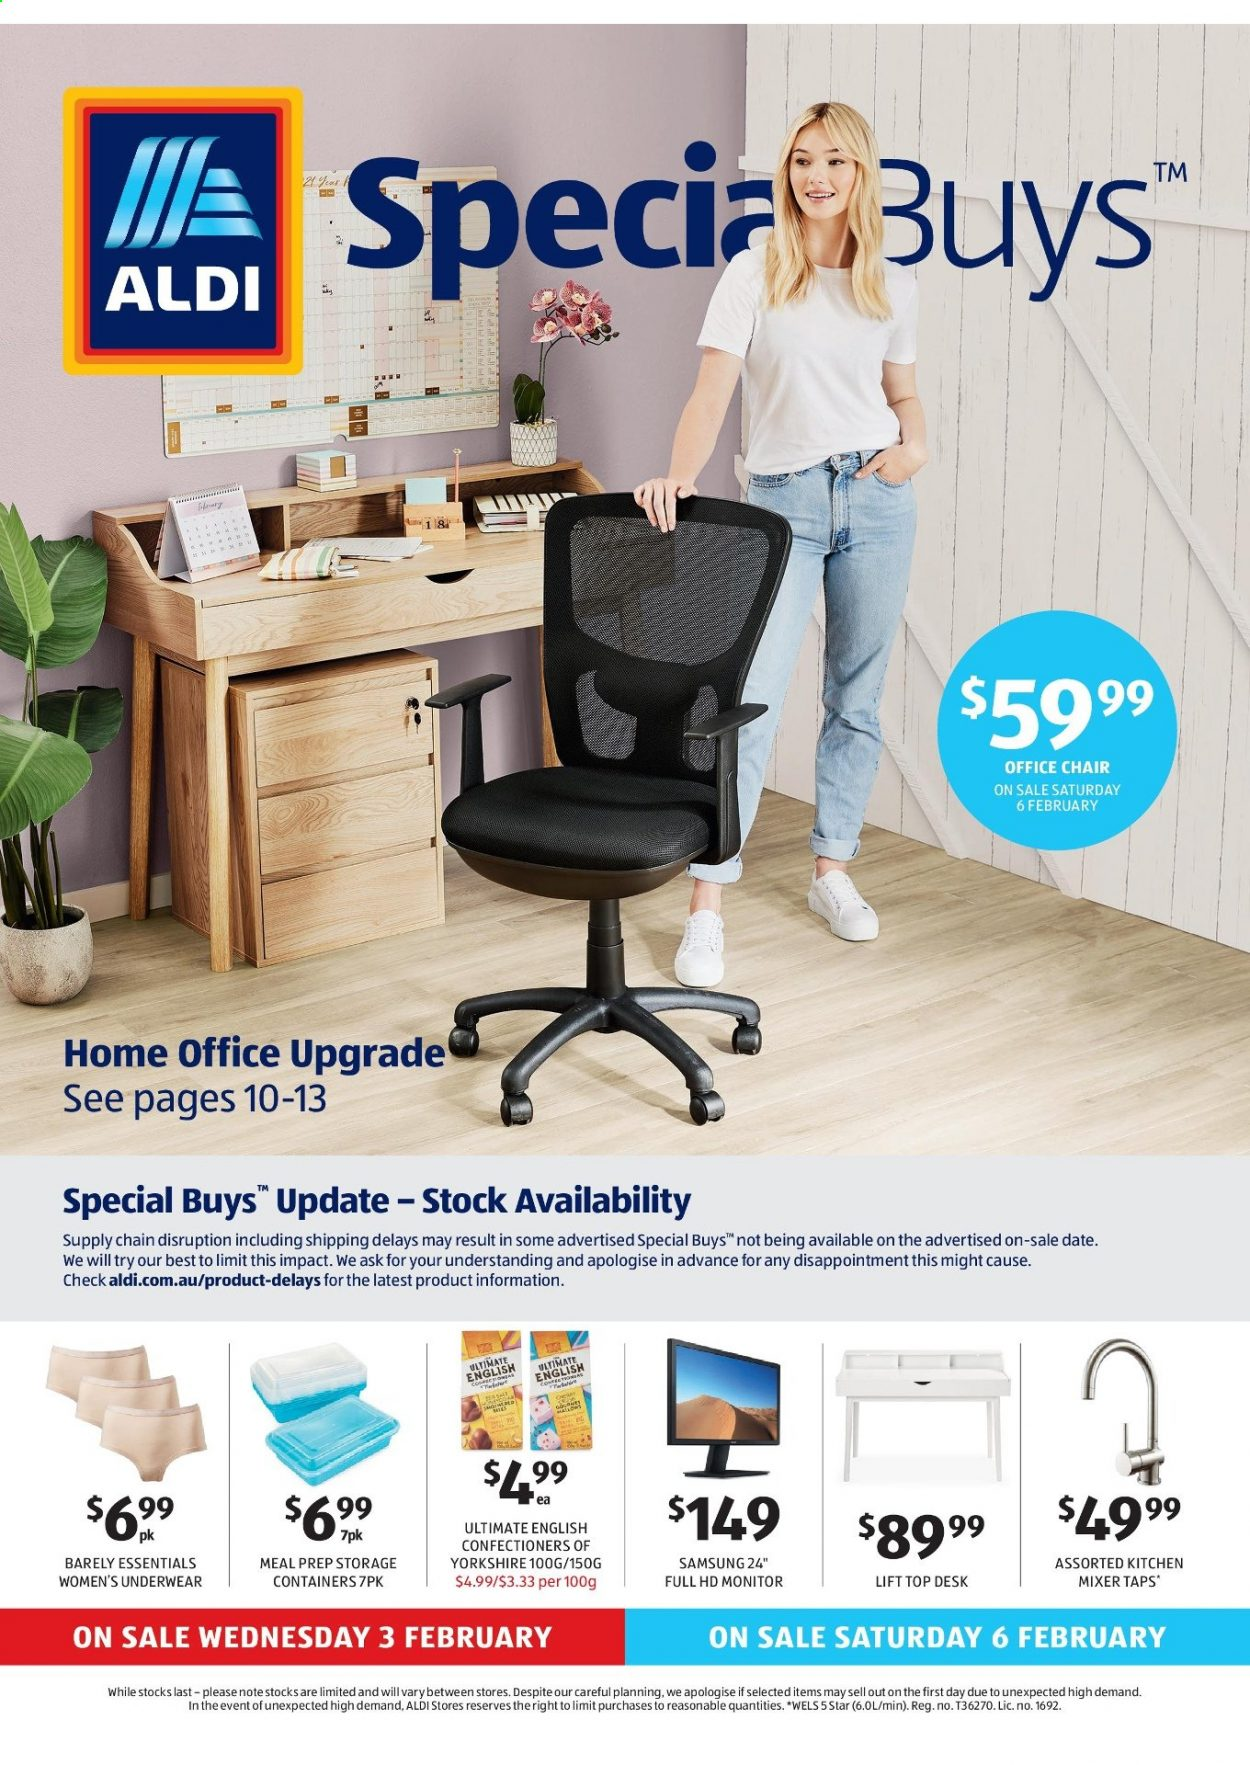 ALDI Catalogue - 3.2.2021 - 9.2.2021 - Sales products - Samsung, mixer, underwear, office chair, Full HD monitor. Page 1.